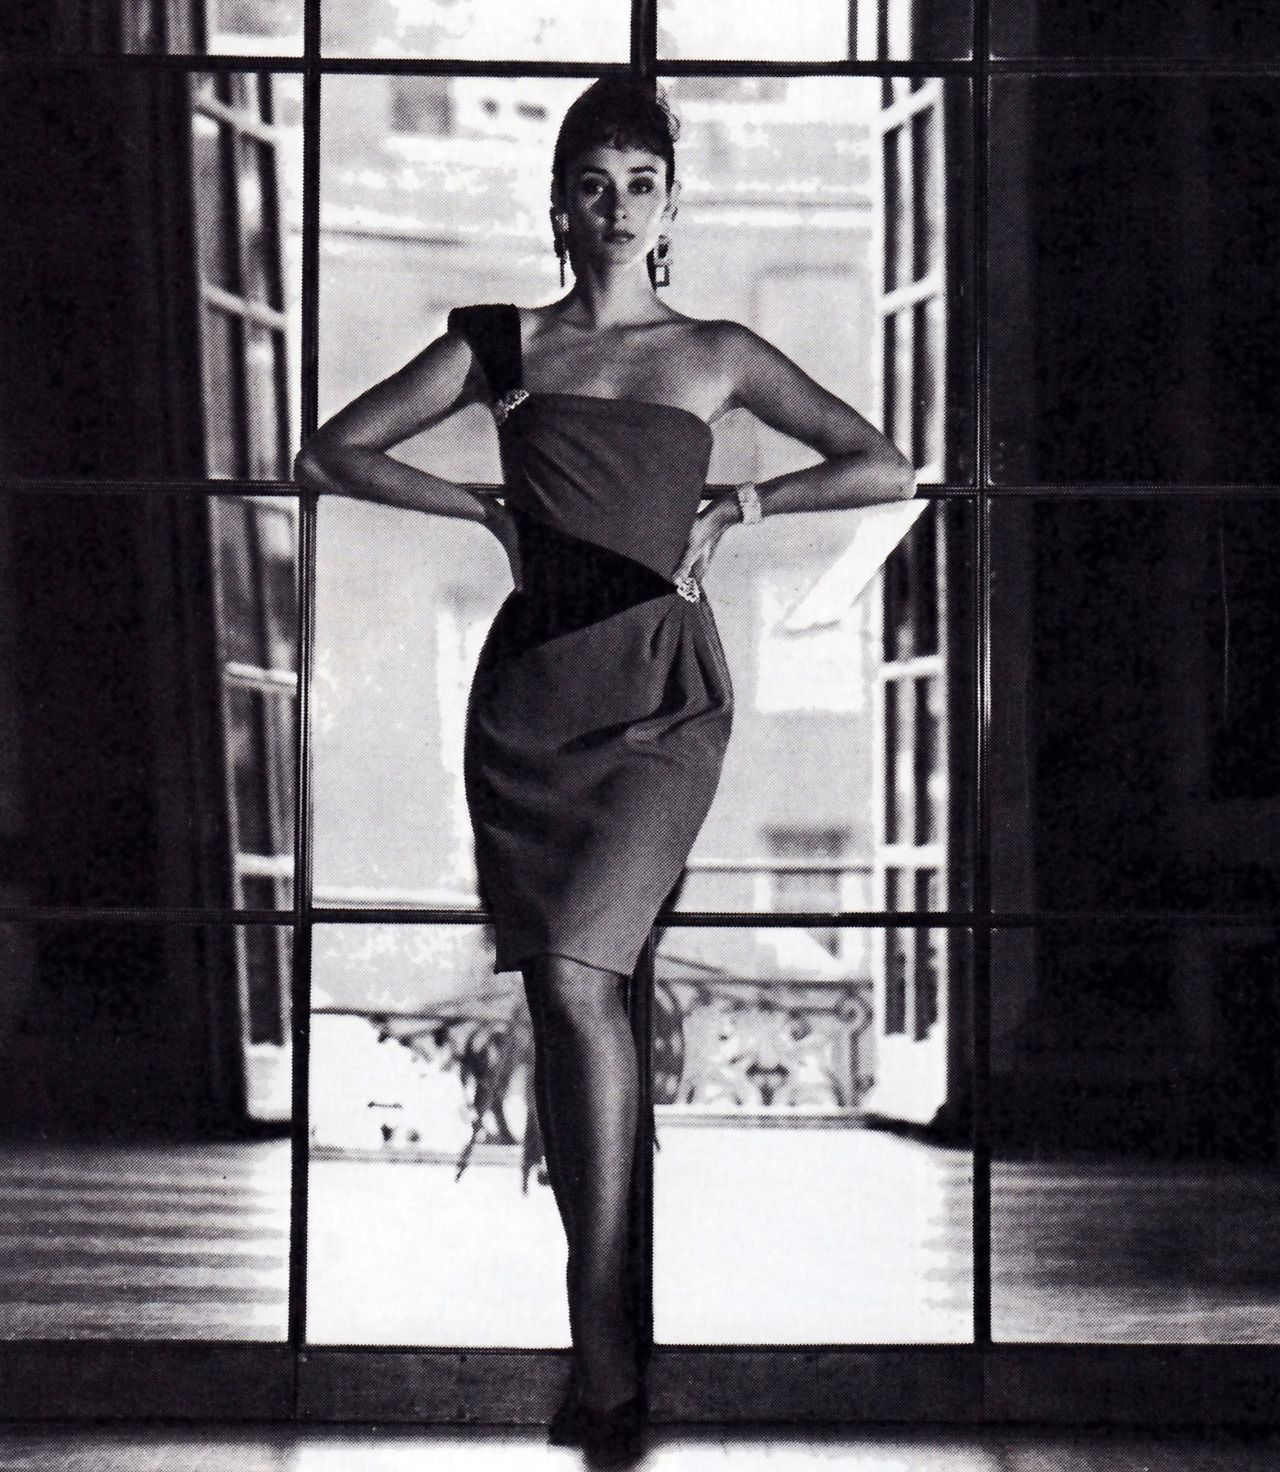 Carolyne Roehm/Saks Fifth Avenue, Town & Country magazine, July 1985.